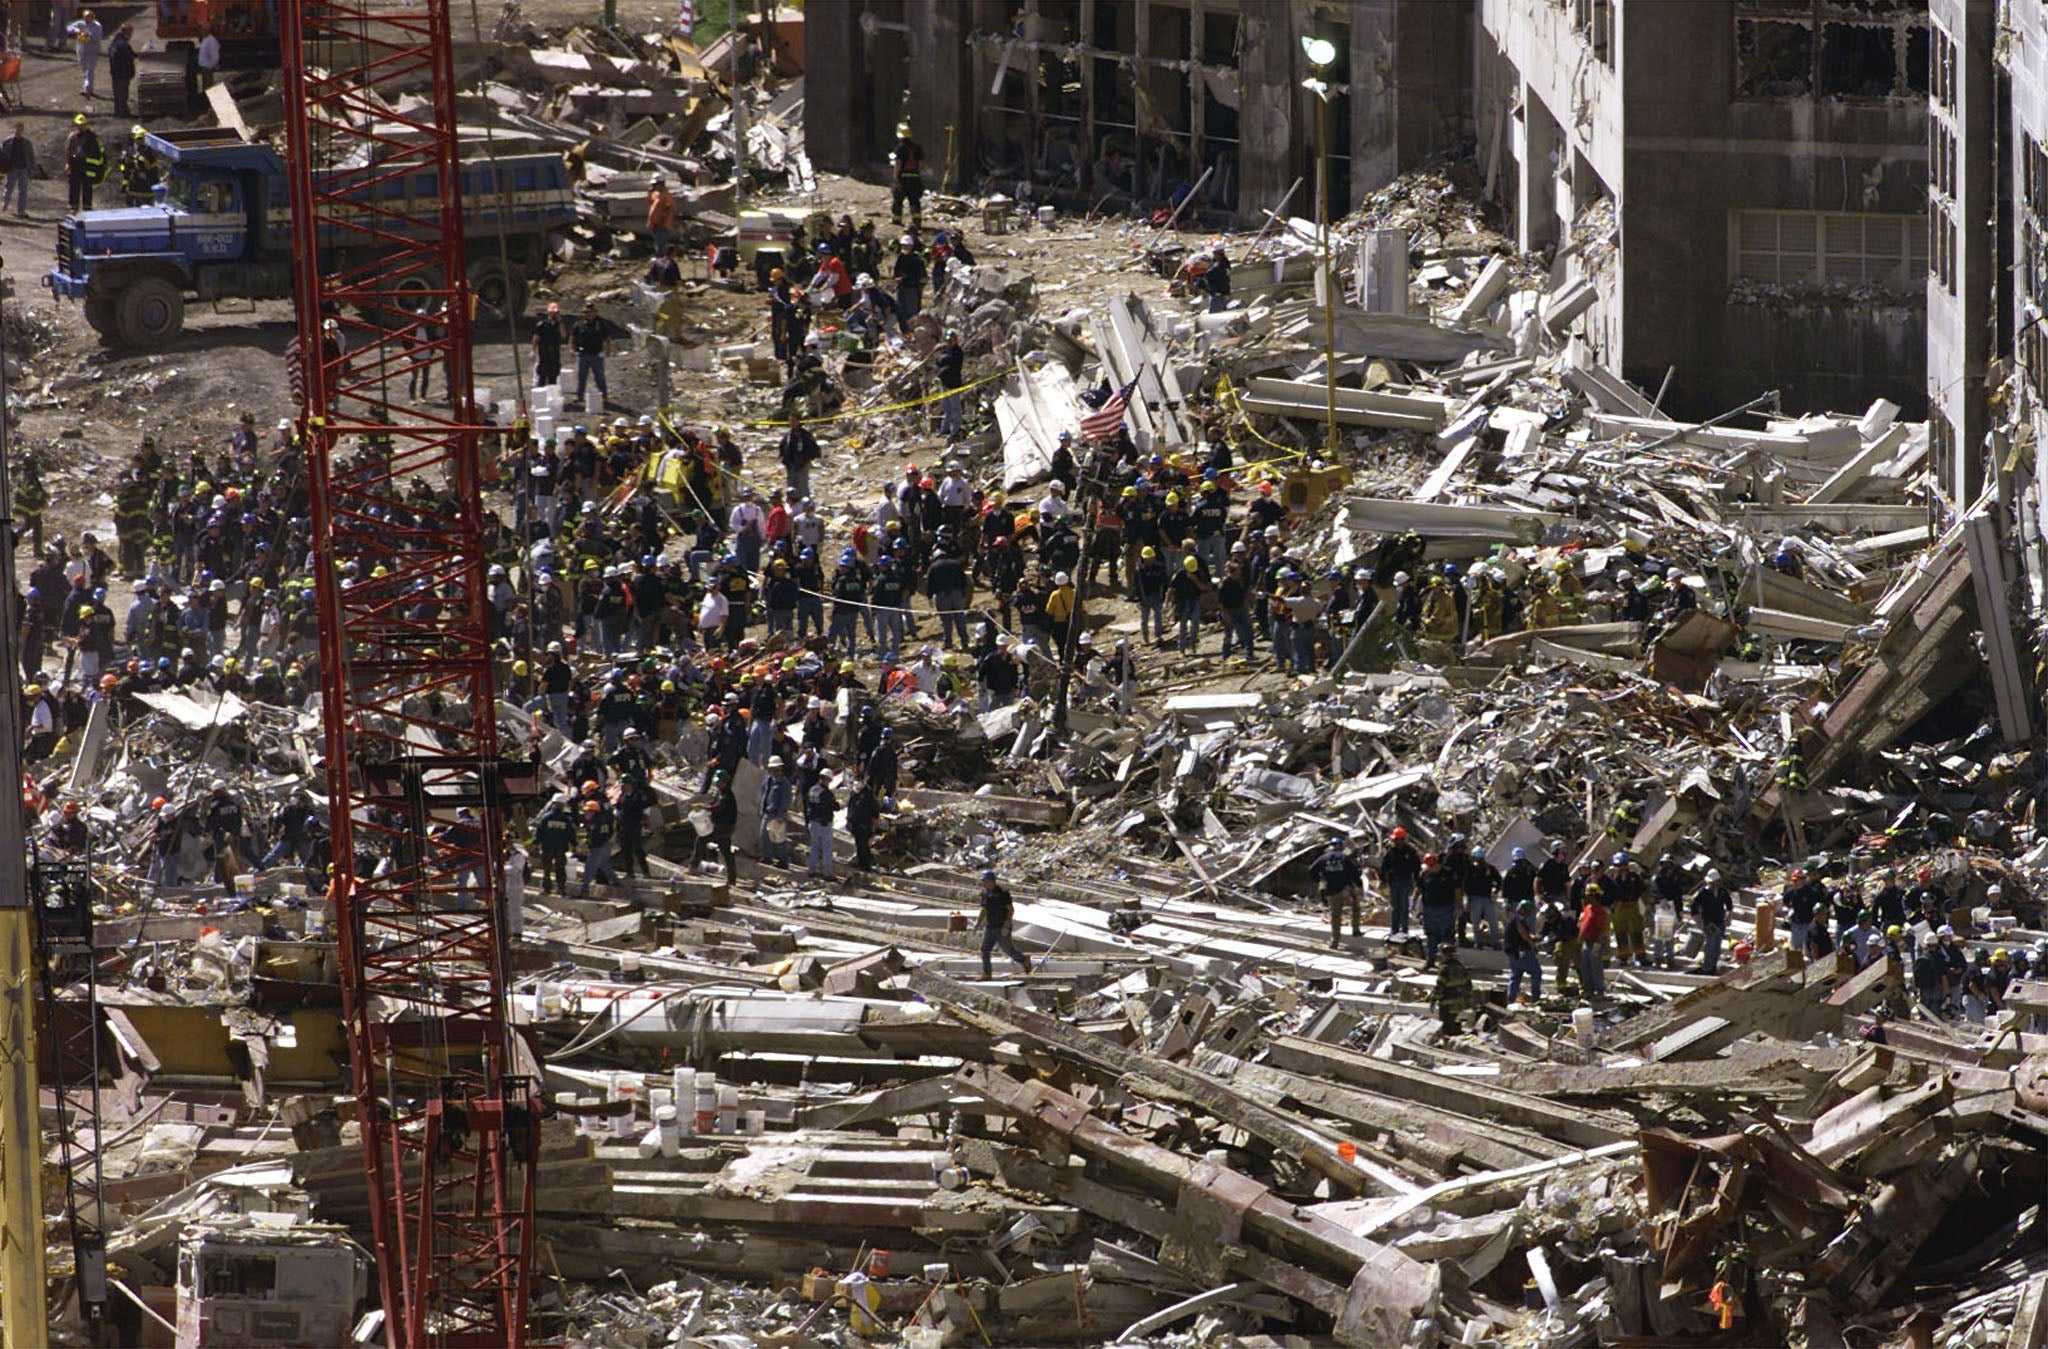 22 photos of 11 and the days after rescue workers continue their search for survivors on the rubble of the destroyed world trade center